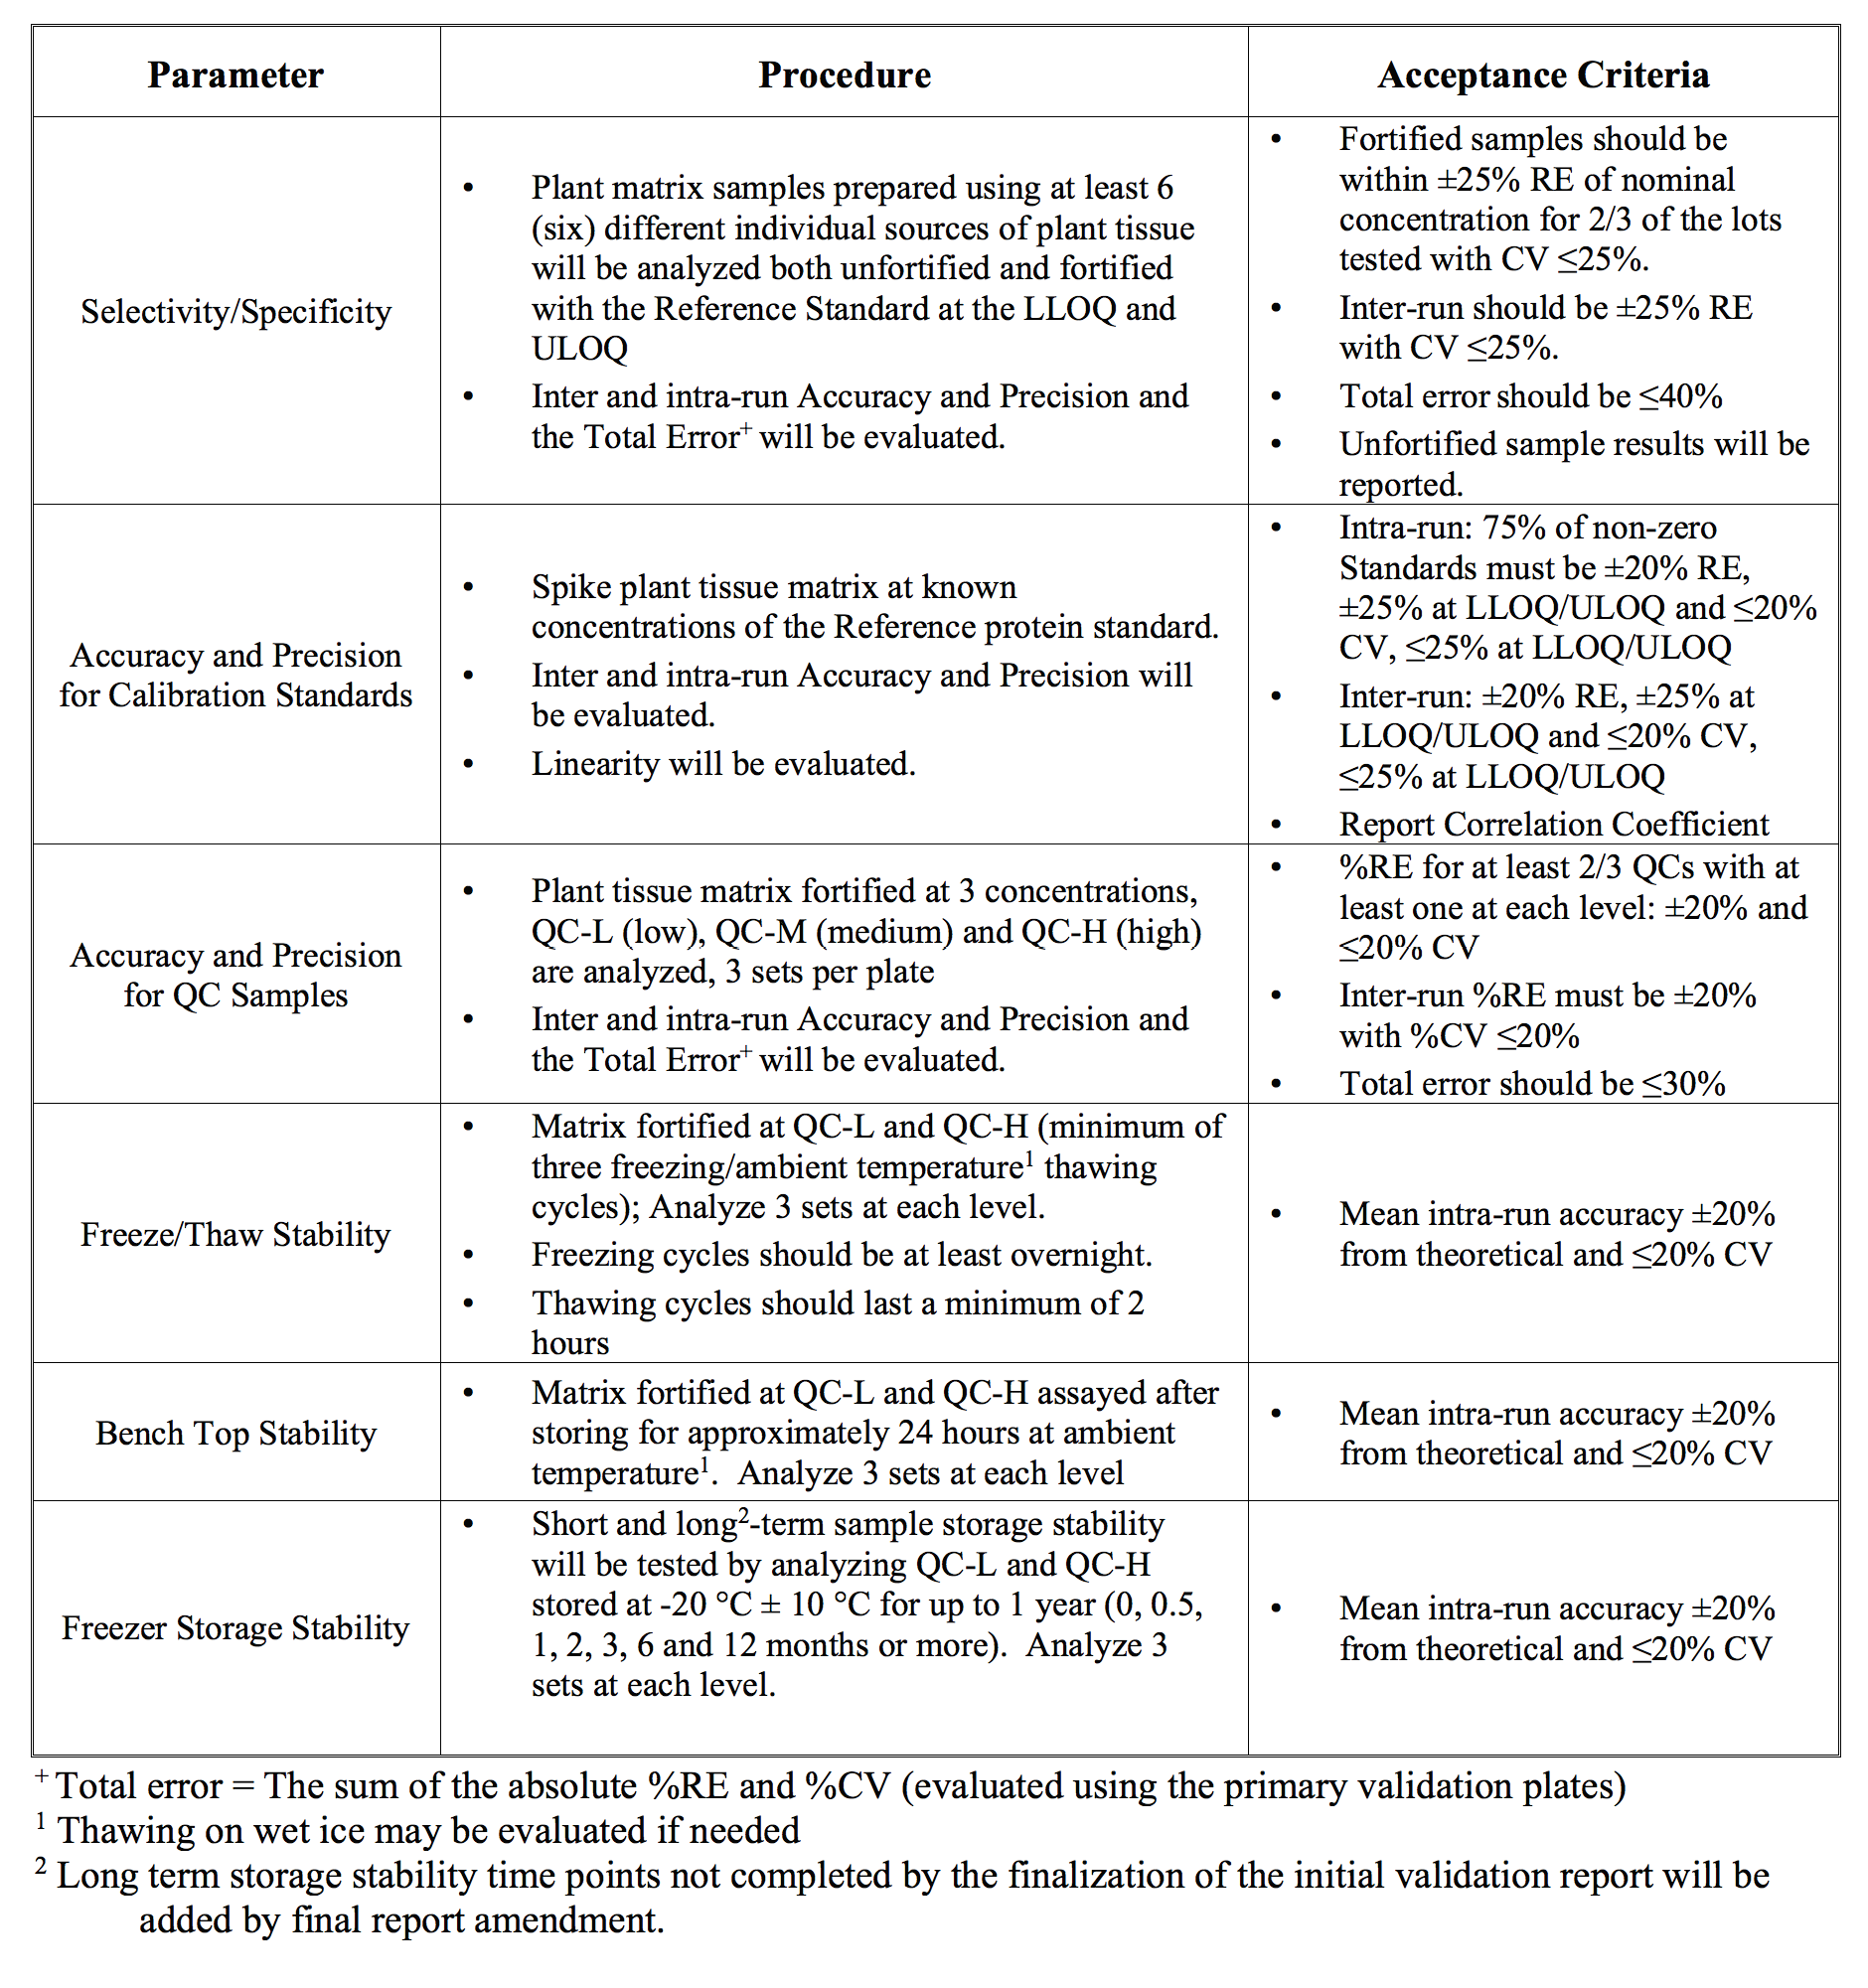 Table 1. Representative validation tests with acceptance criteria for an ELISA method